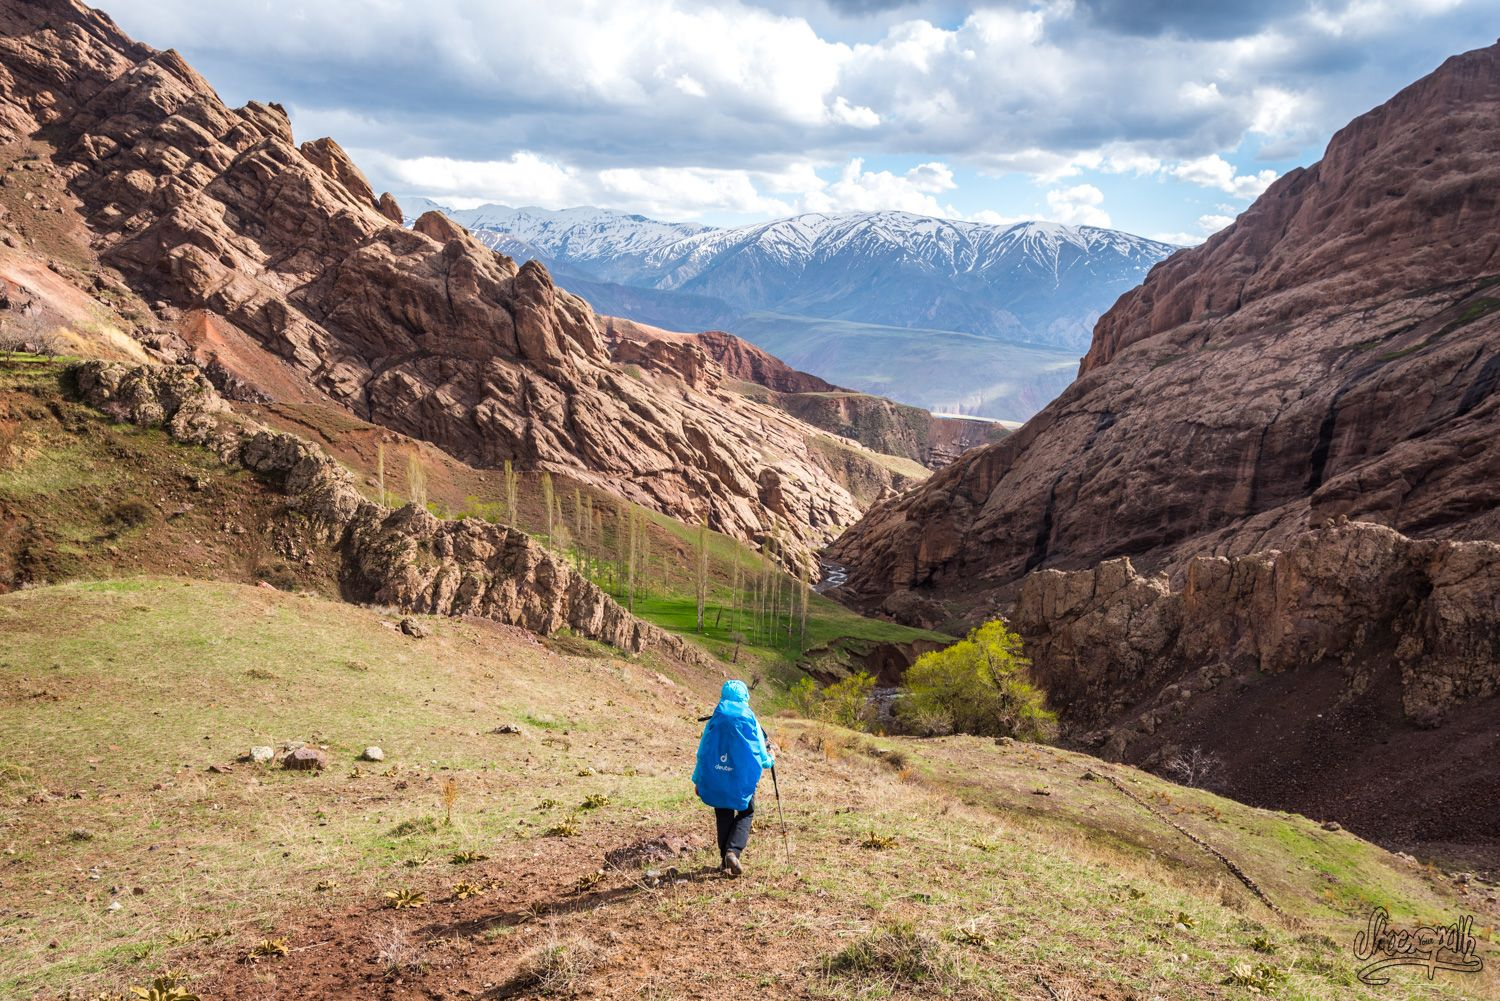 Hiking in Alamut, the valley of the assassins by shoesyourpath.com